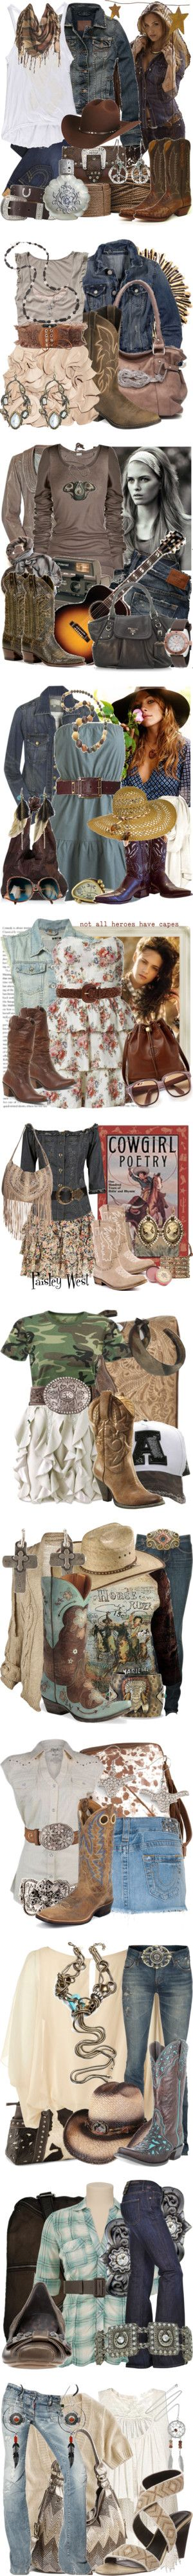 """""""Country & Western"""" by saintcharlesstyle ❤ liked on Polyvore"""